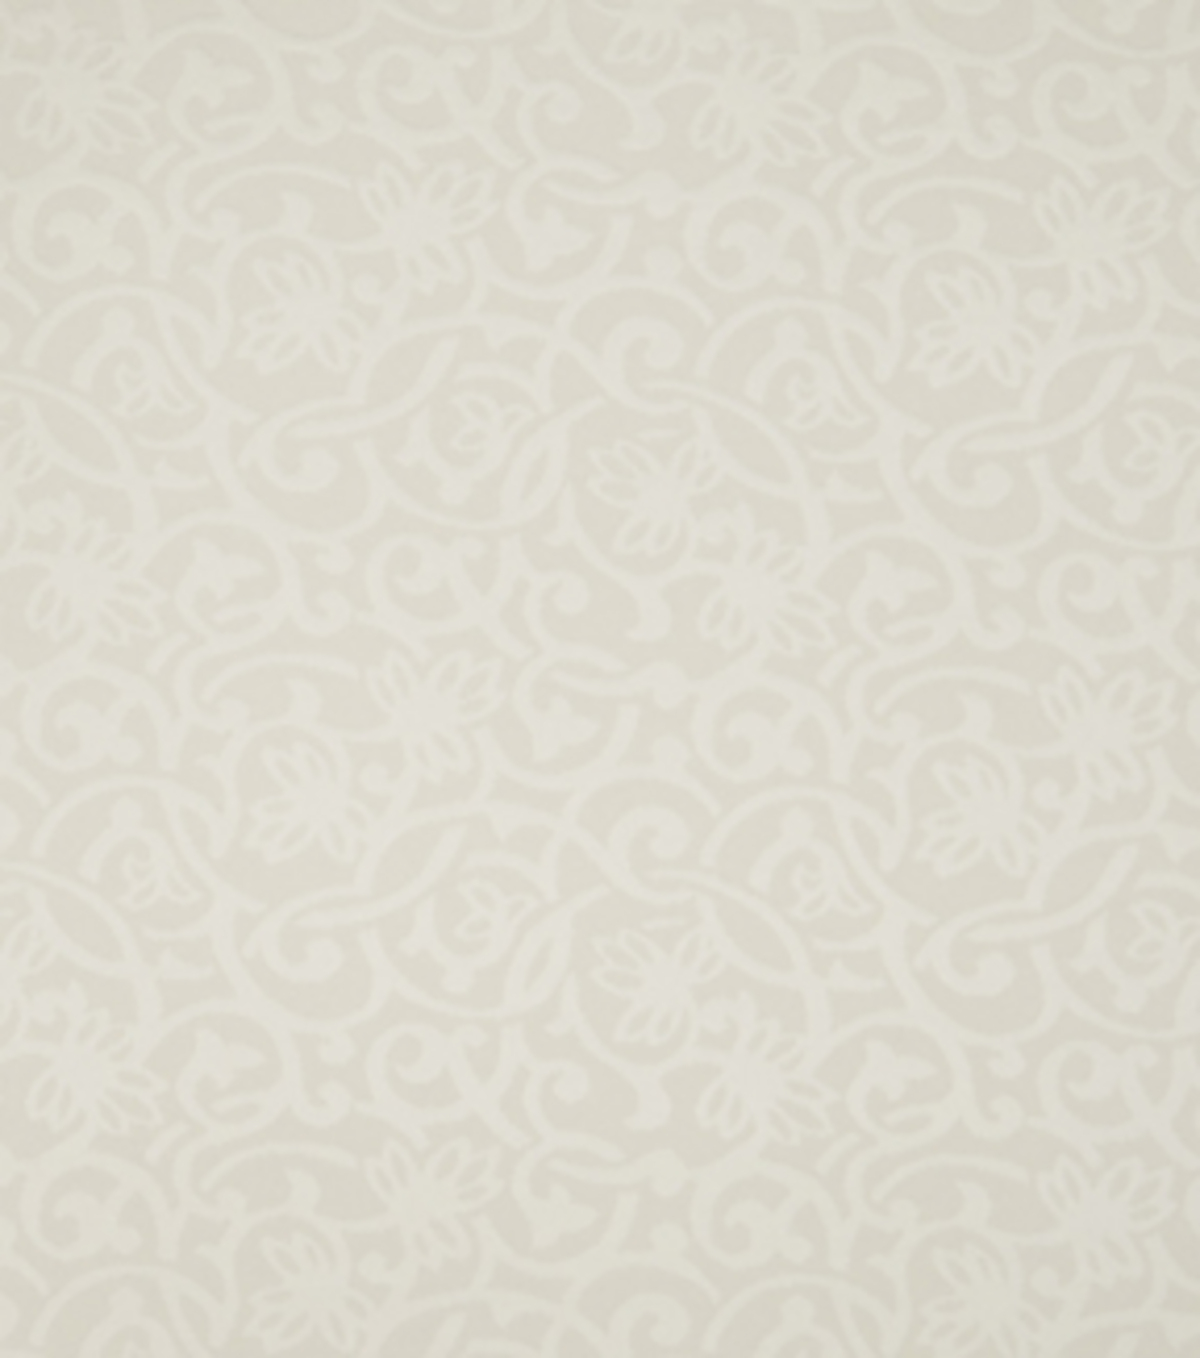 Home Decor 8\u0022x8\u0022 Fabric Swatch-Bella Dura Princess Magnolia